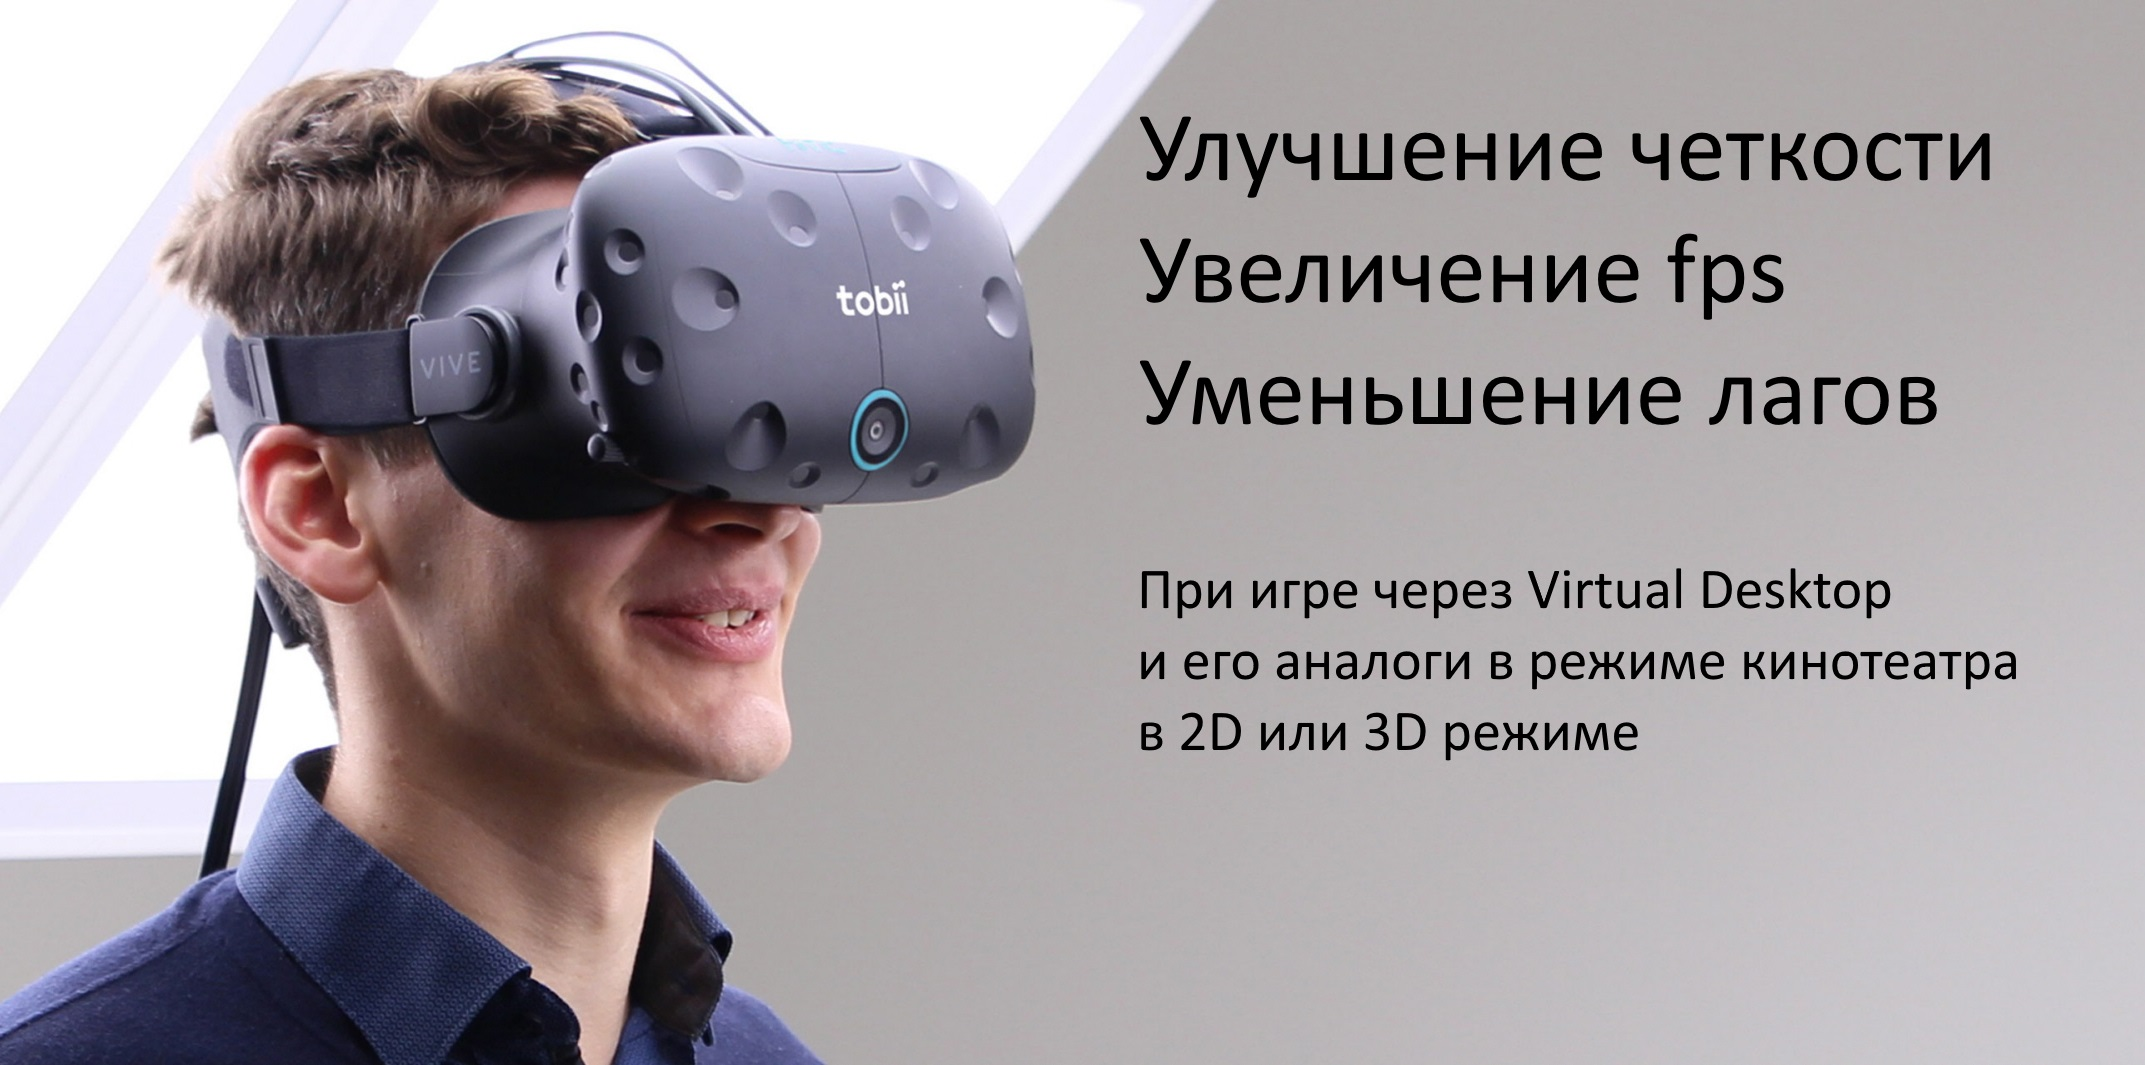 Улучшение качества изображения при игре в VR через Virtual Desktop